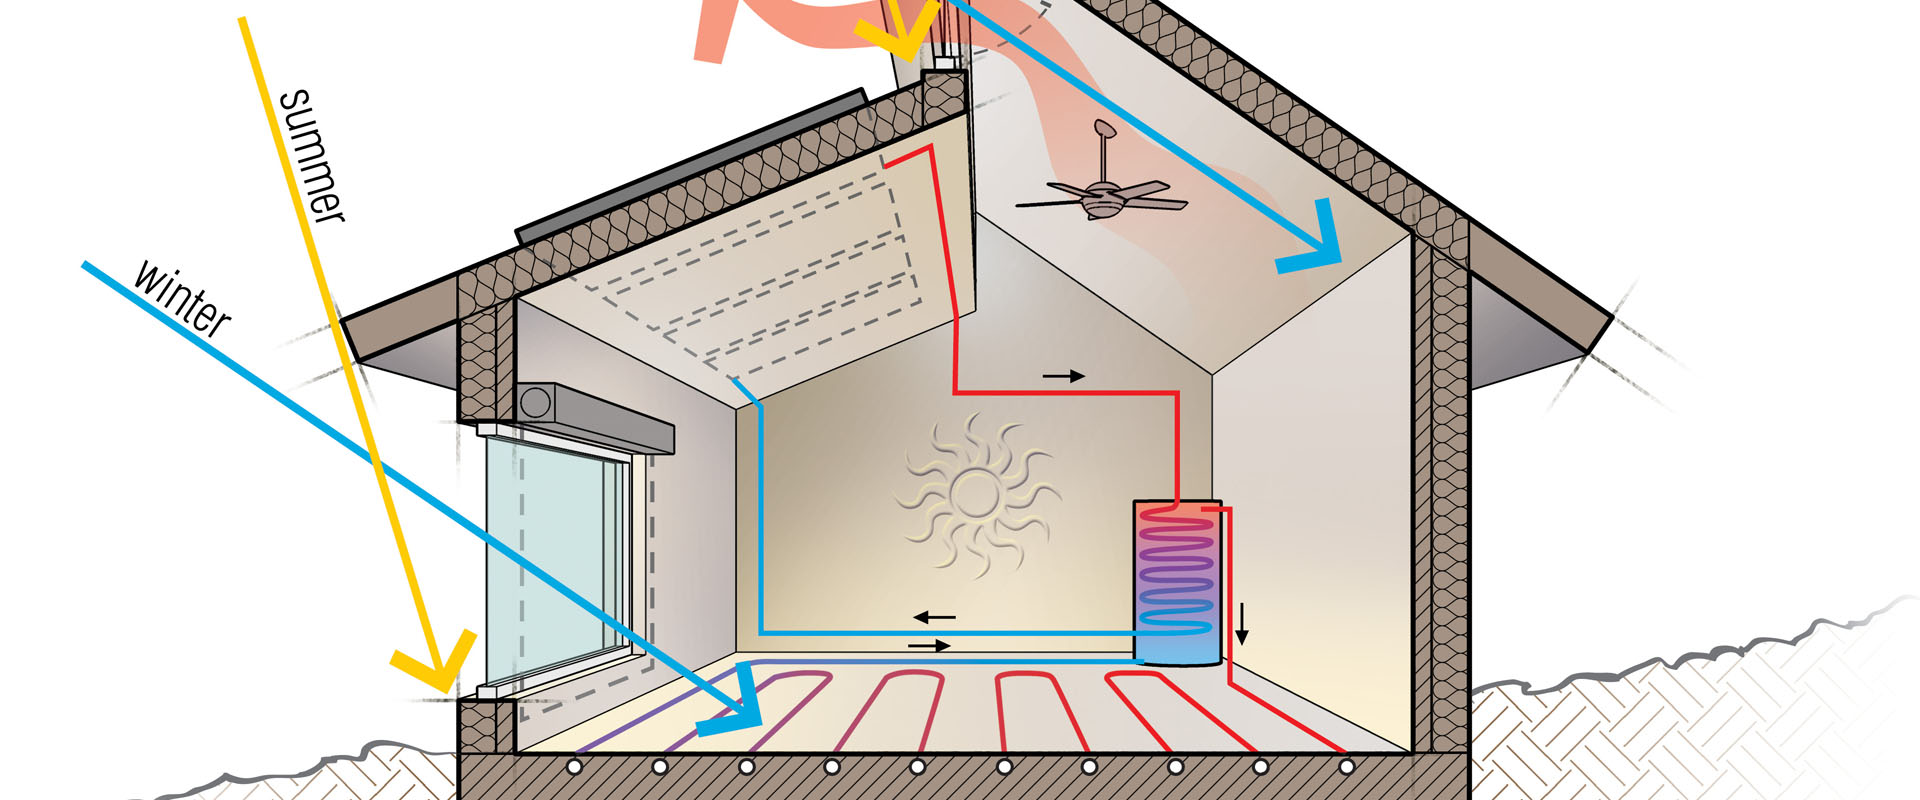 Passive Solar Heating PROJECT PAGE